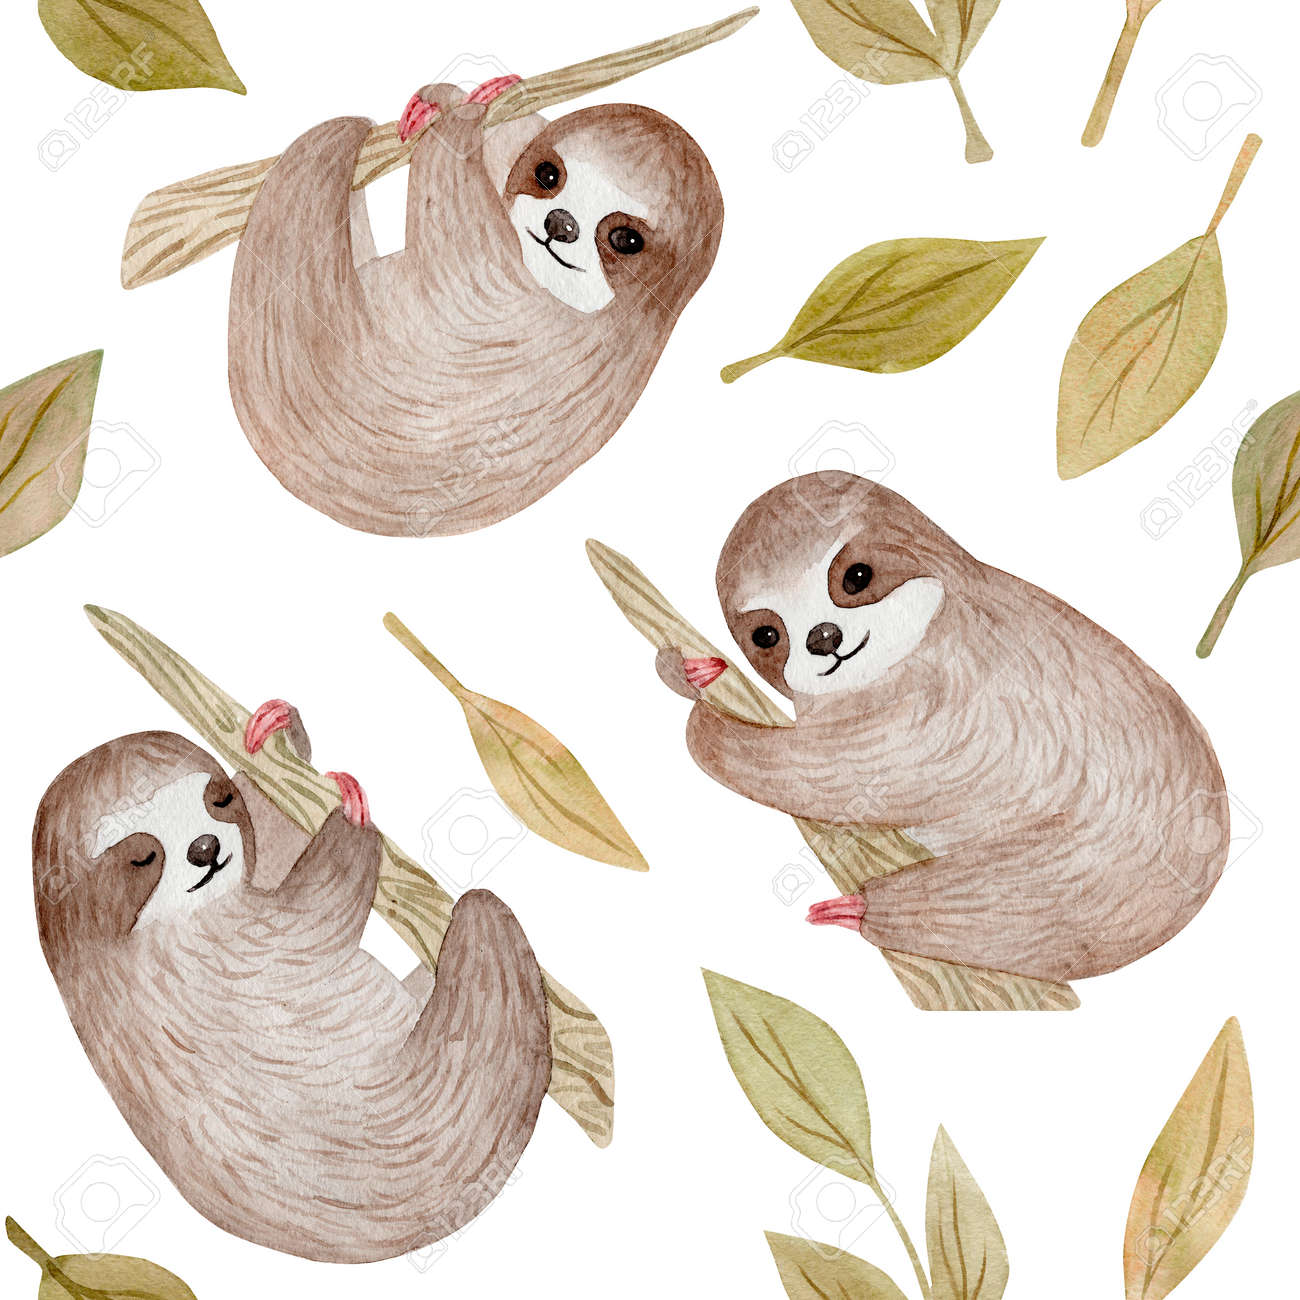 Watercolor Cute Sloth On The Palm Tree Tropical Animal Clipart Stock Photo Picture And Royalty Free Image Image 121190858